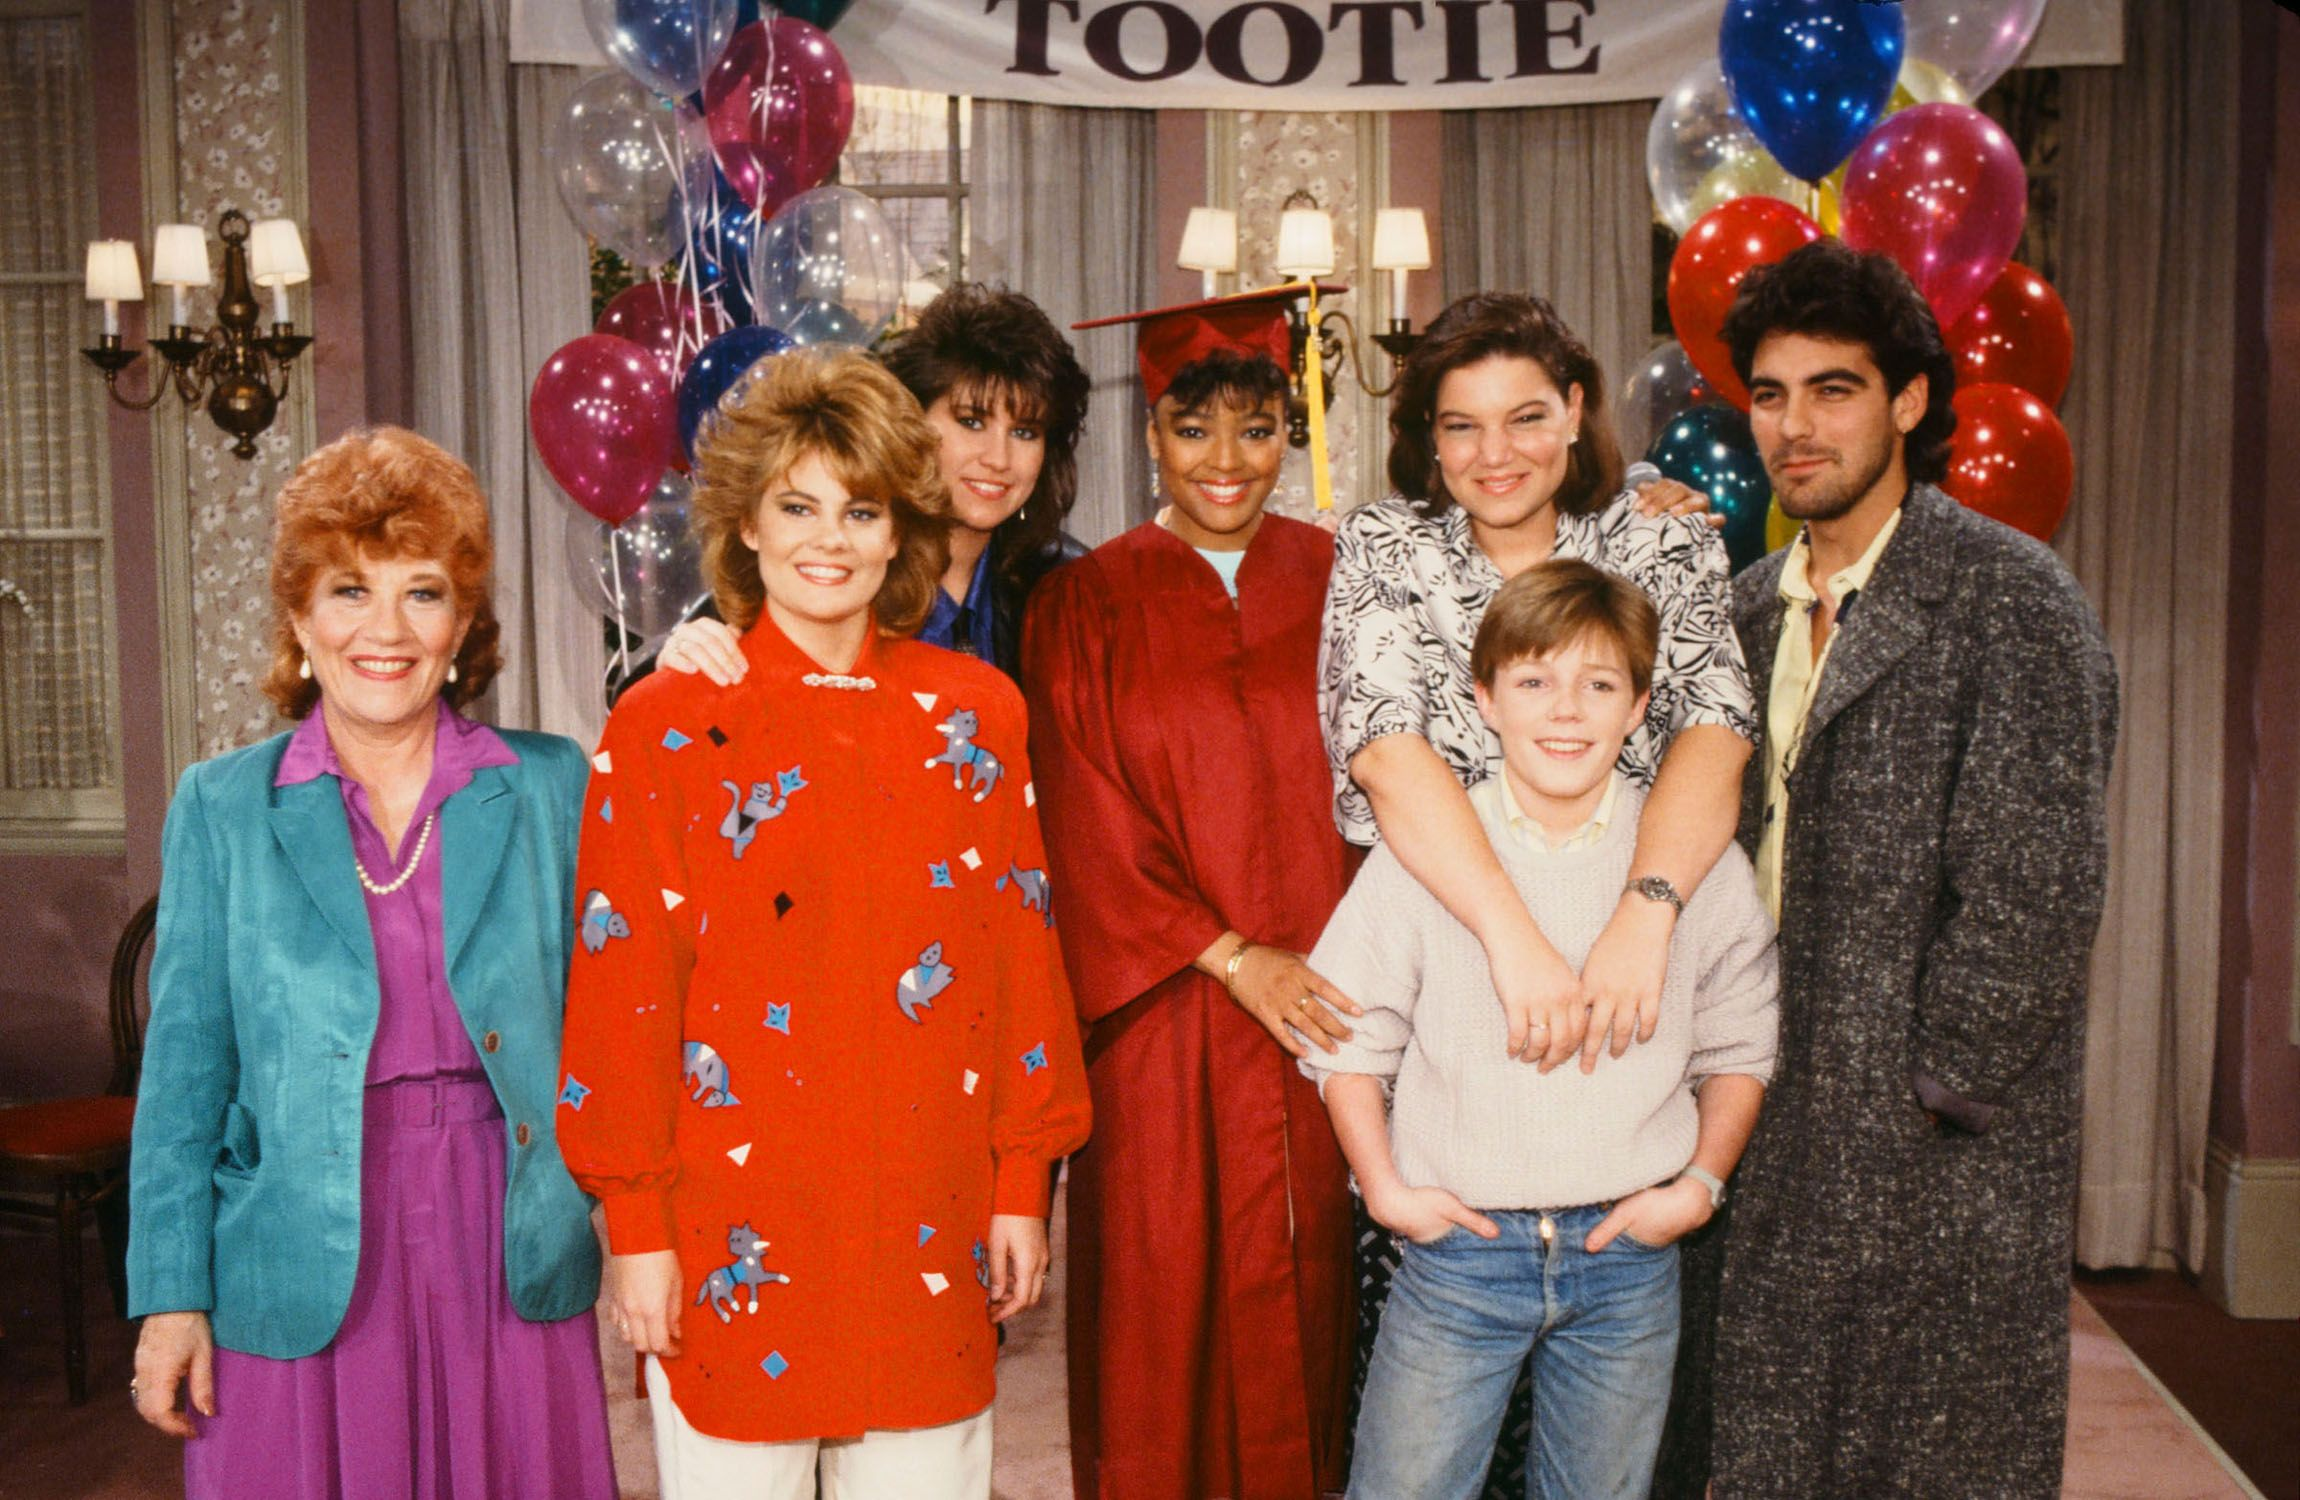 The Facts of Life cast at its 150th Show Party in 1986. Pictured: (L-R) Charlotte Rae as Edna Garrett, Lisa Whelchel as Blair Warner, Nancy McKeon as Joanne 'Jo' Polniaczek, Kim Fields as Dorothy 'Tootie' Ramsey, Mindy Cohn as Natalie Green, Mackenzie Astin as Andy Moffet, Clooney as George Burnett.